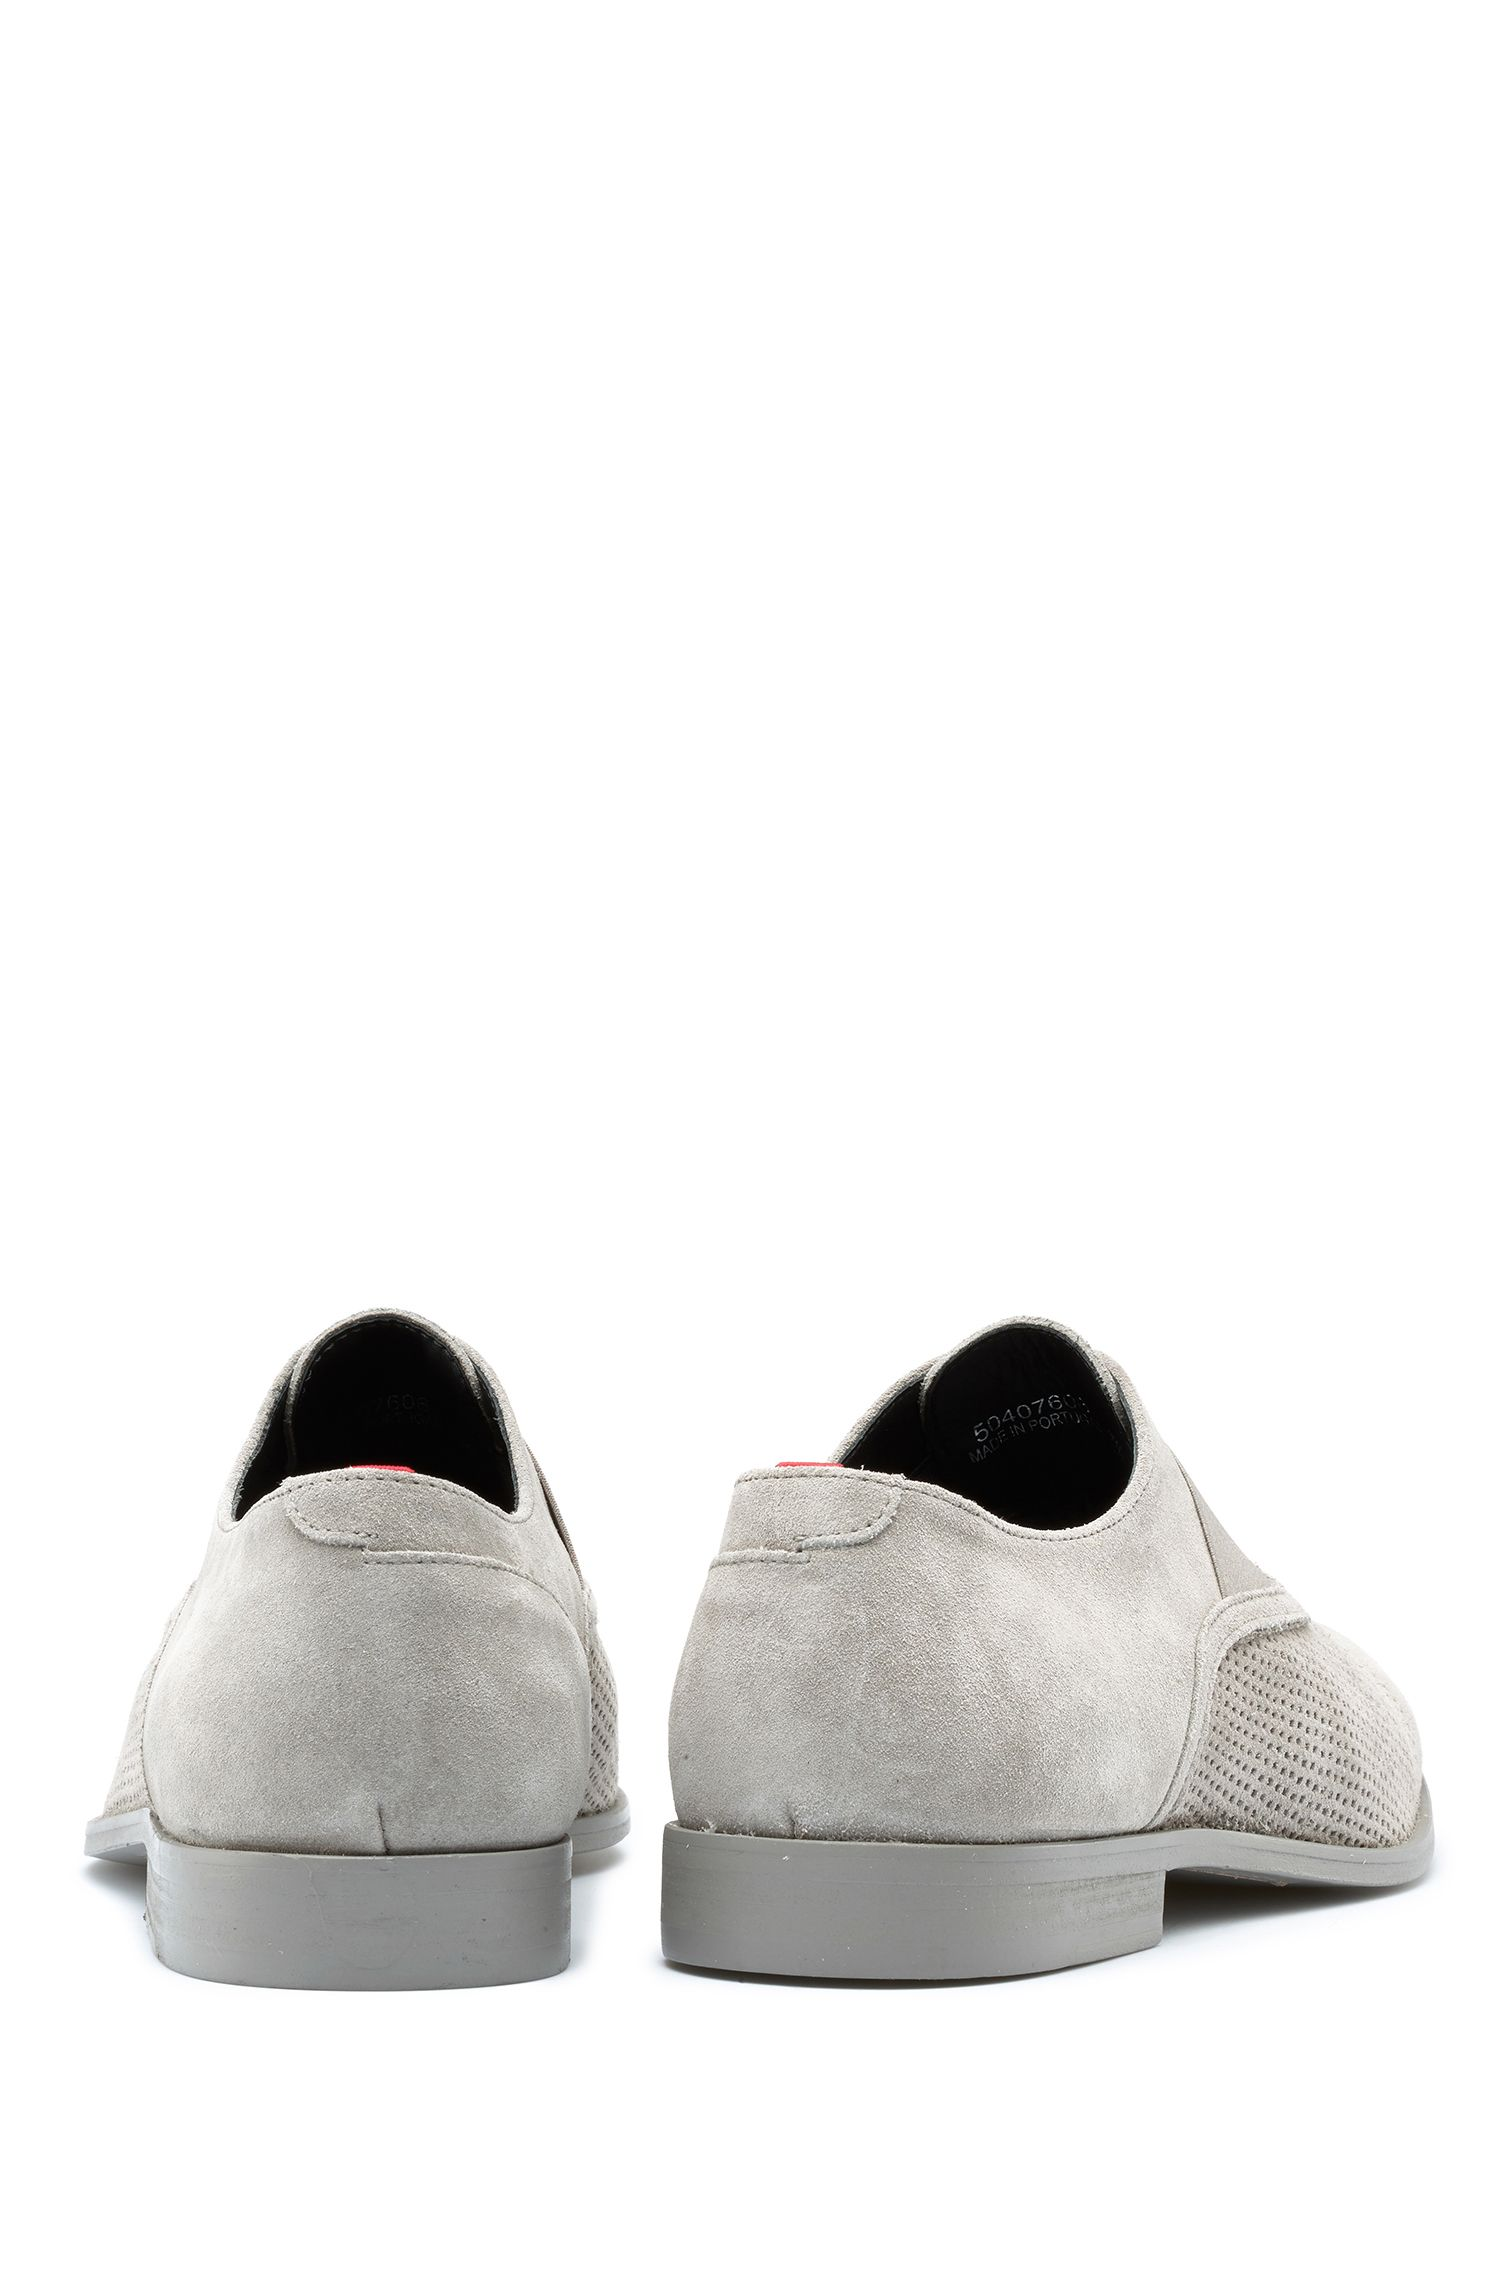 Slip-on Oxford shoes in suede with perforated details, Light Grey